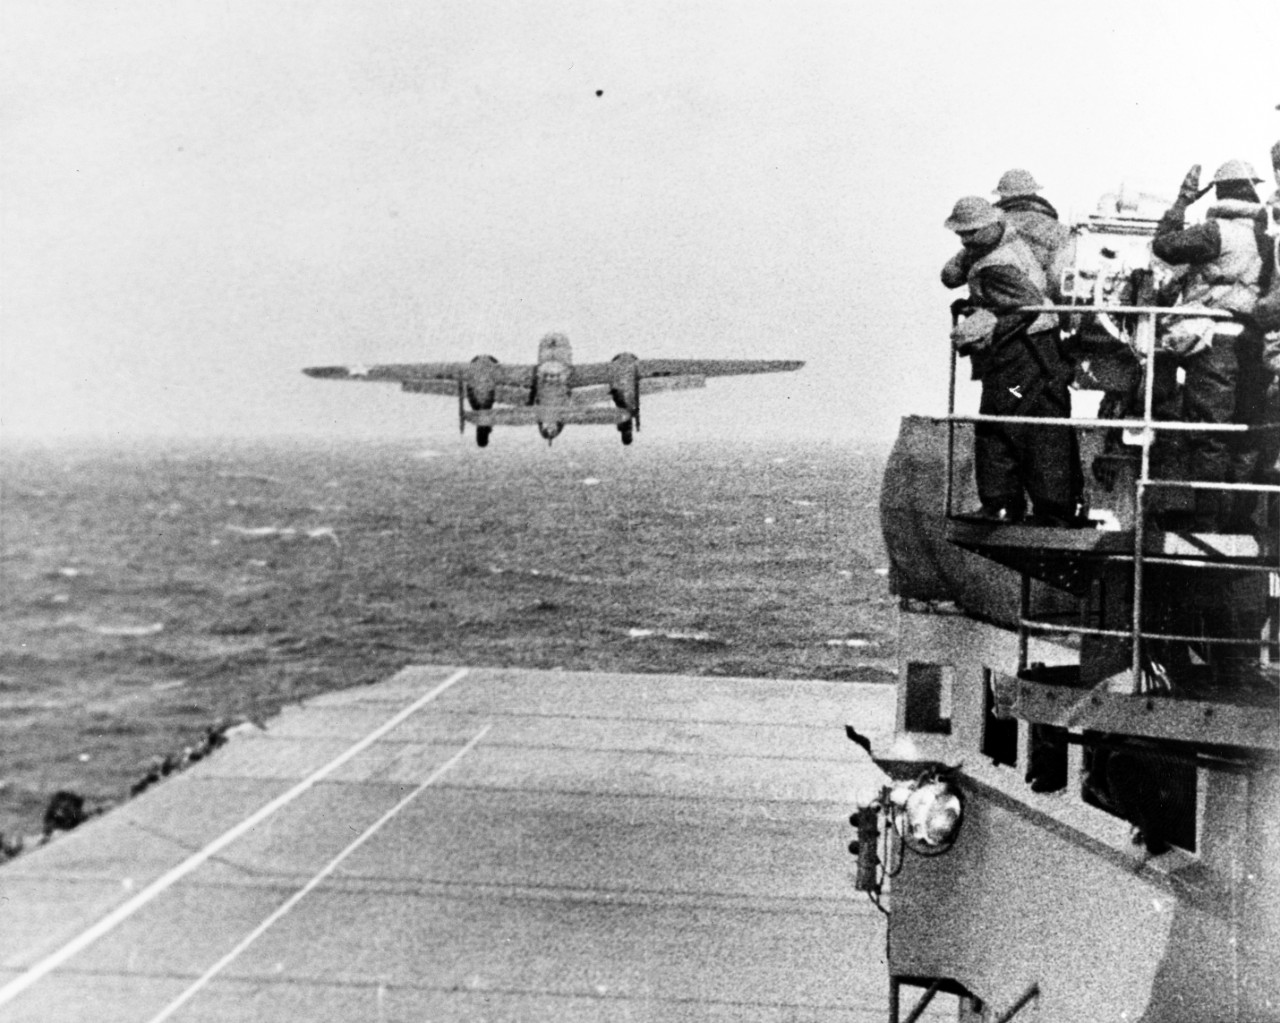 A B-25B Mitchell of the Army's 17th Bombardment Group takes off from Hornet to bomb the Japanese home islands, 18 April 1942. Note the men wearing the old British style M1917A1 helmets as they watch from the signal lamp platform (right). (U.S. Navy Photograph 80-G-41196, National Archives and Records Administration, Still Pictures Branch, College Park, Md.)